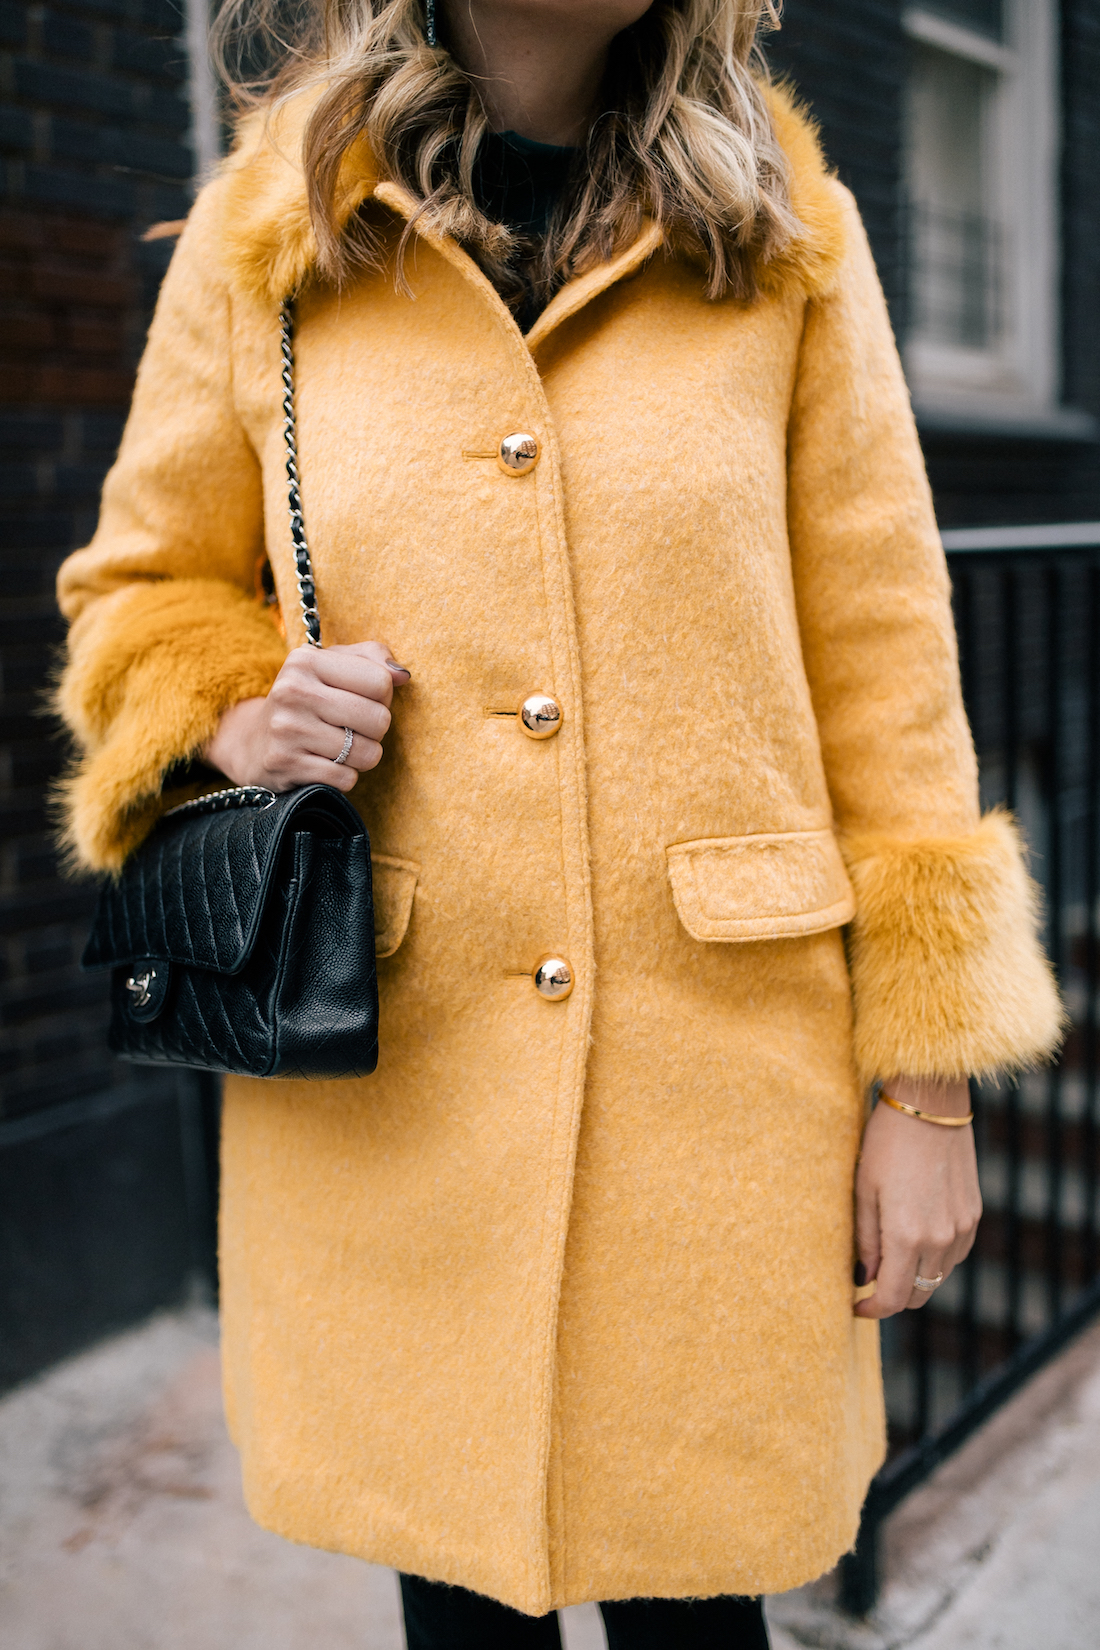 Outfit Details:Kate Spade Coat